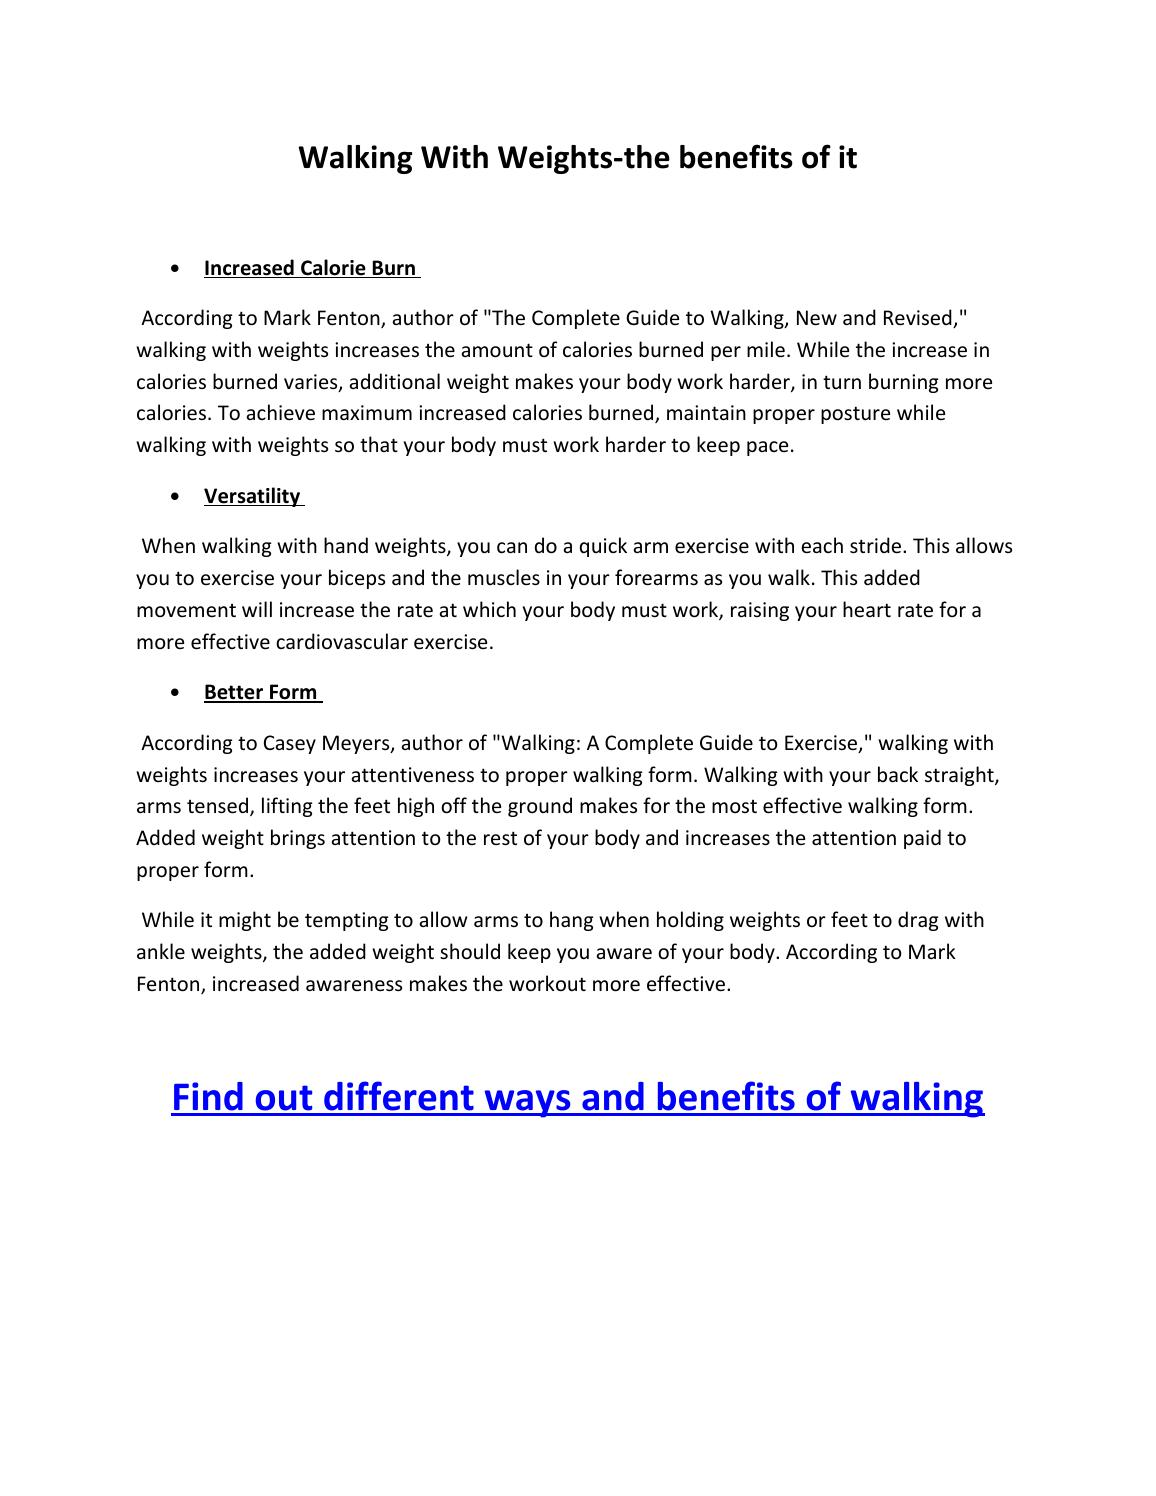 Walking with weights the benefits by Derrick Graham - issuu